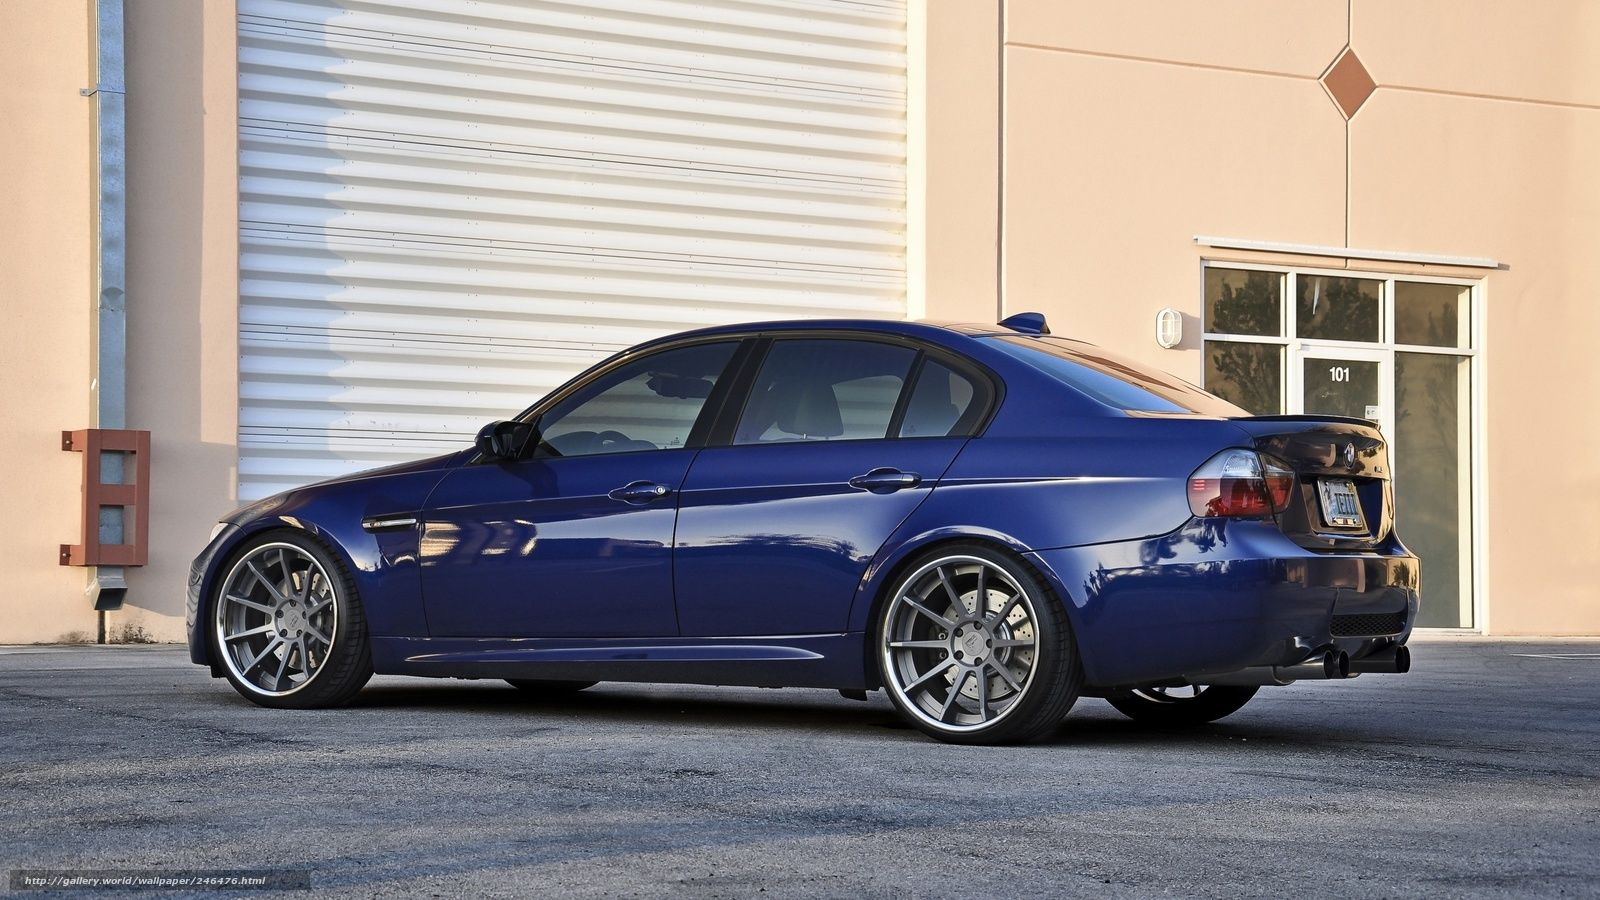 Bmw E90 Wallpaper On Wallpapergetcom Rims Bmw Bmw M3 E90 Bmw M3